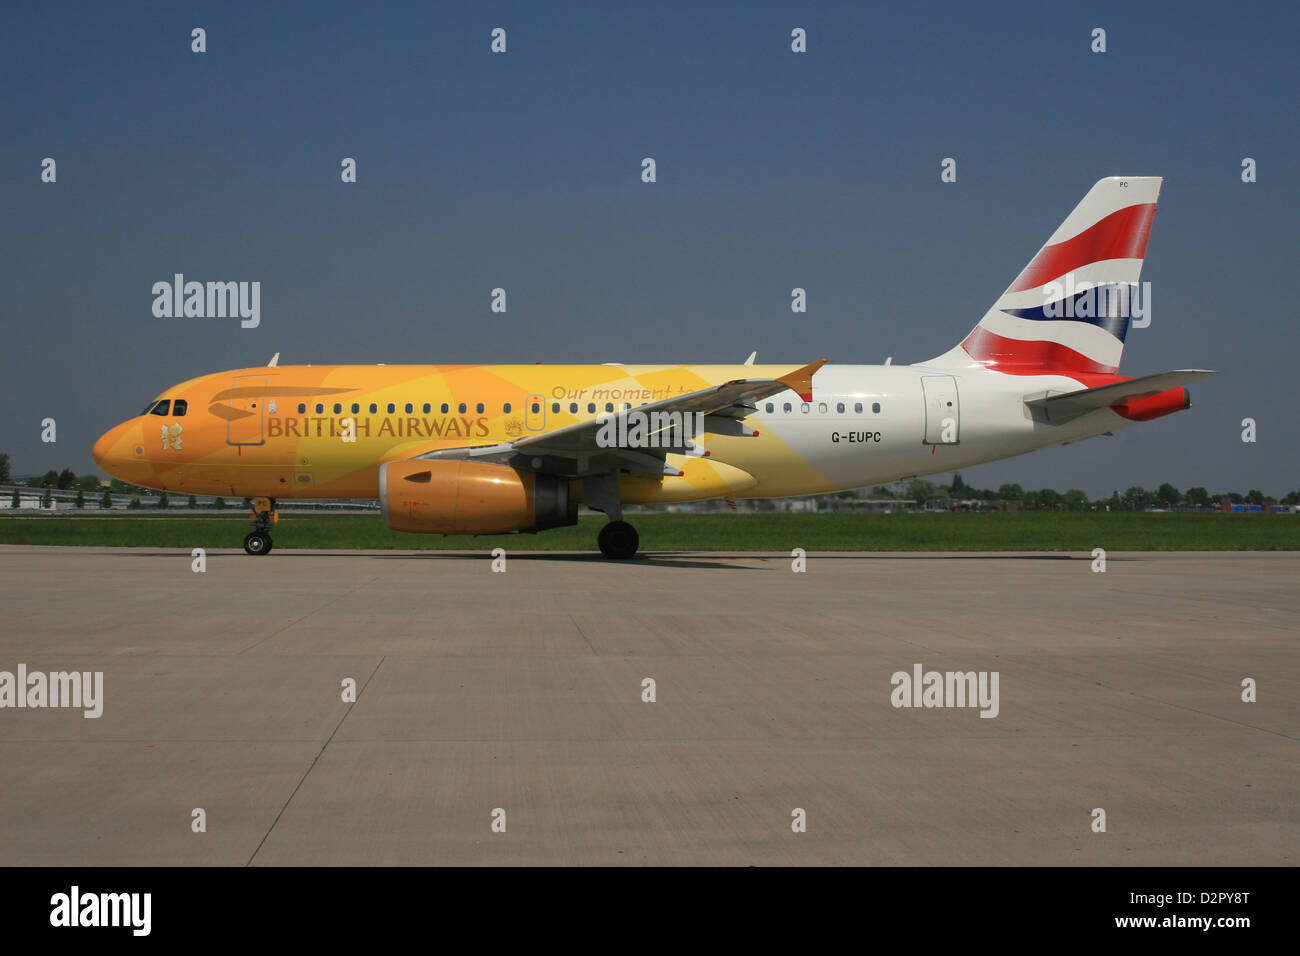 BRITISH AIRWAYS IAG OLYMPIC FIREFLY AIRCRAFT 2012 CARRIED OLYMPIC FLAME TO UK - Stock Image